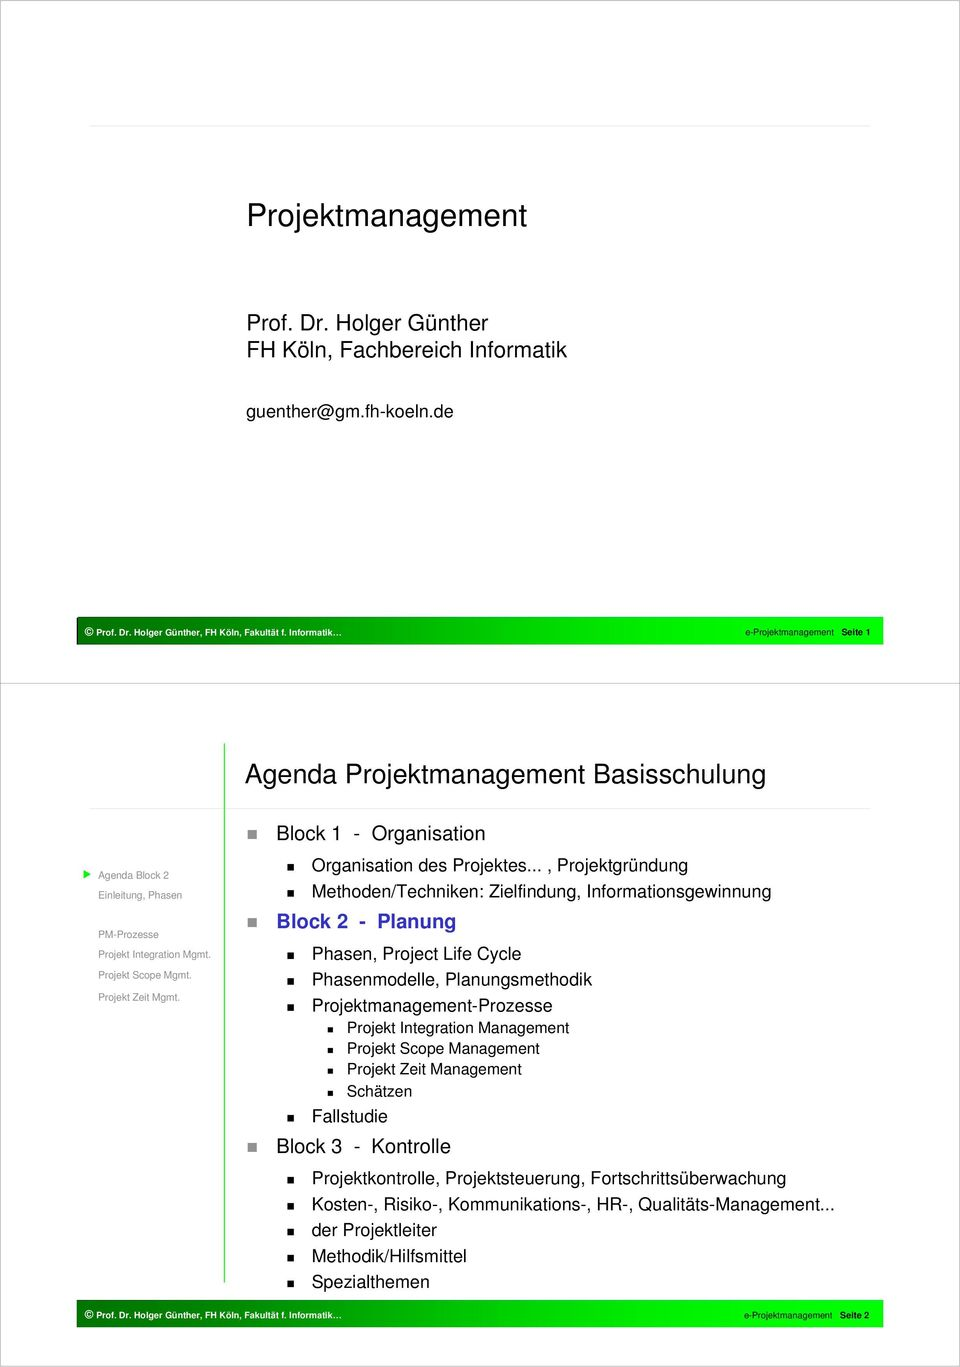 Charmant Risiko Template Projektmanagement Ideen - Entry Level ...